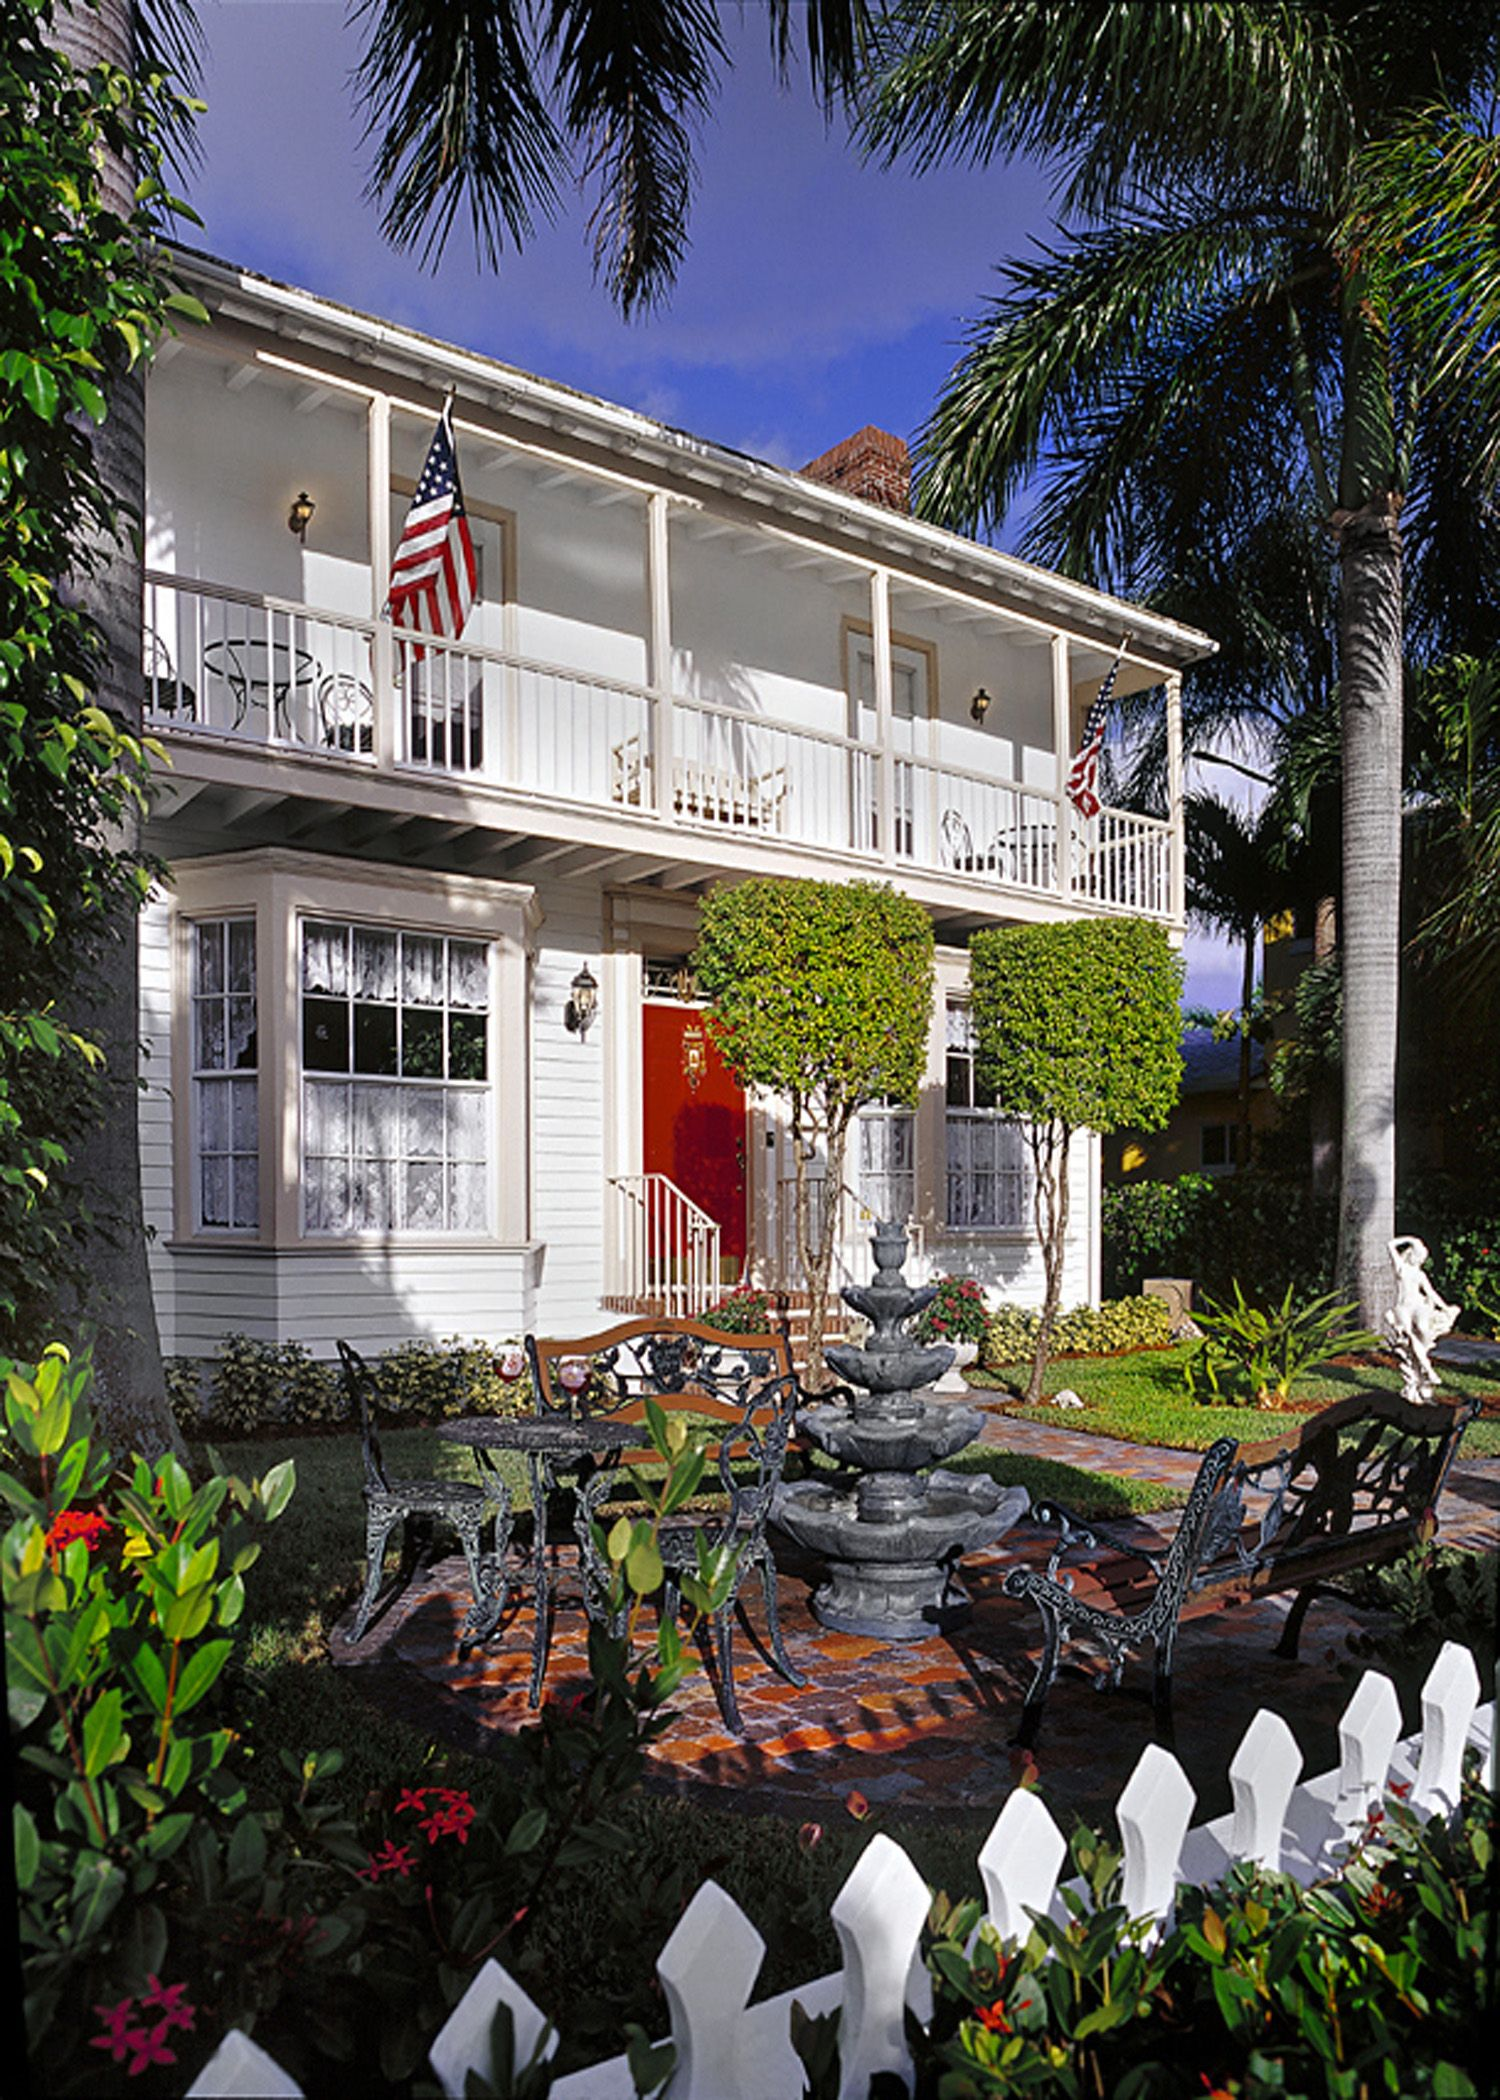 Superbe The Sabal Palm House Bed And Breakfast In Palm Beach County Is Honored To  Be Recognized By AAA For Our Commitment To Provide You With The Highest ...